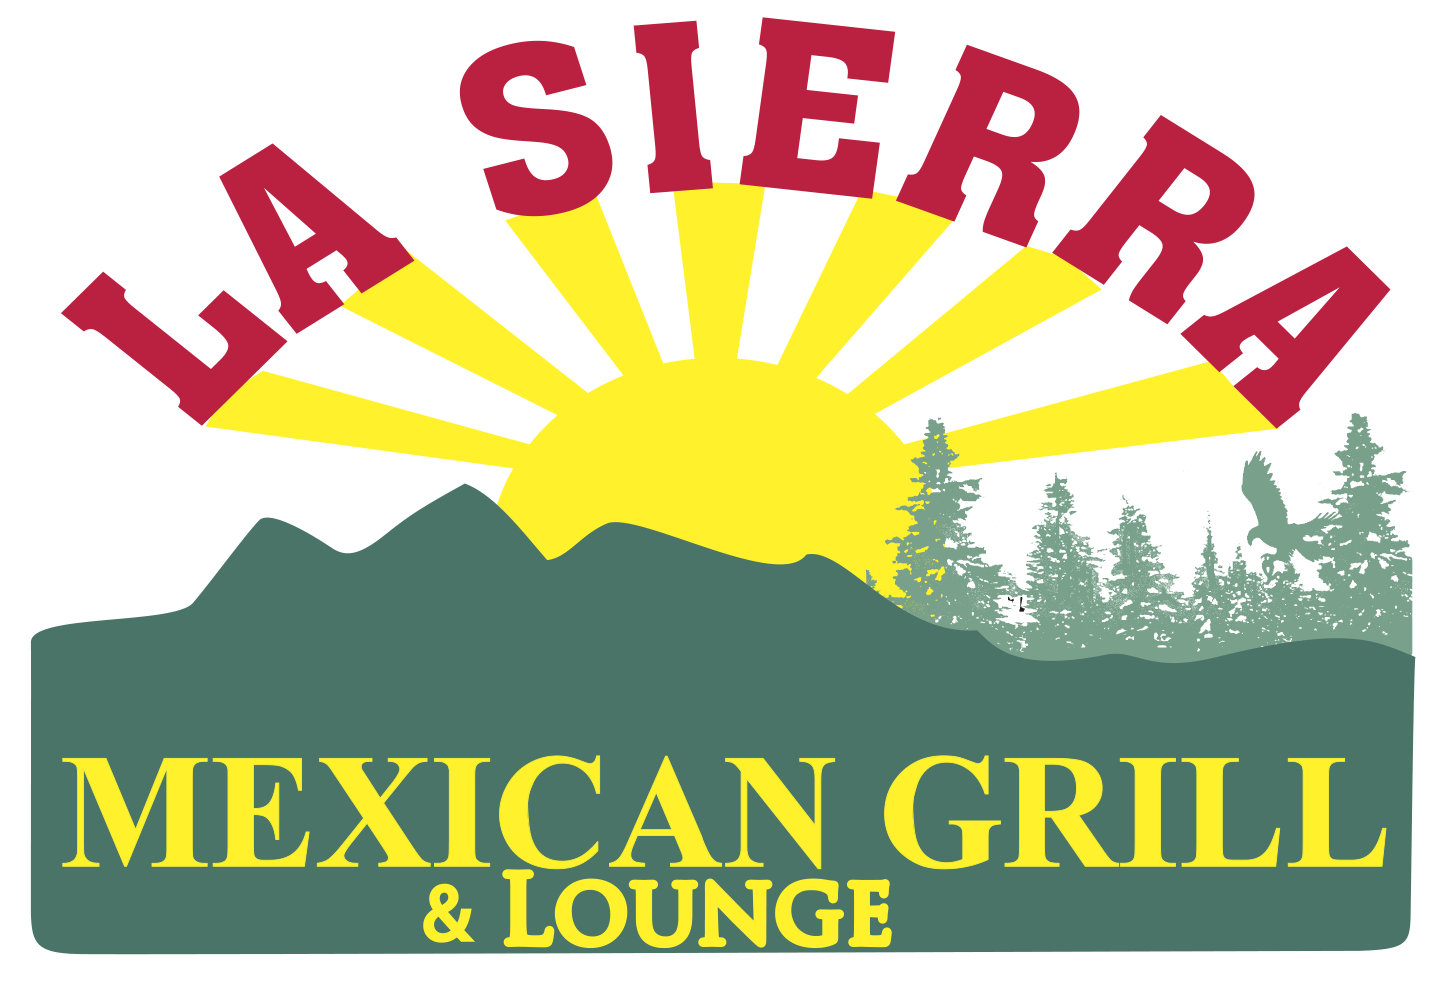 Welcome to La Sierra Mexican Grill